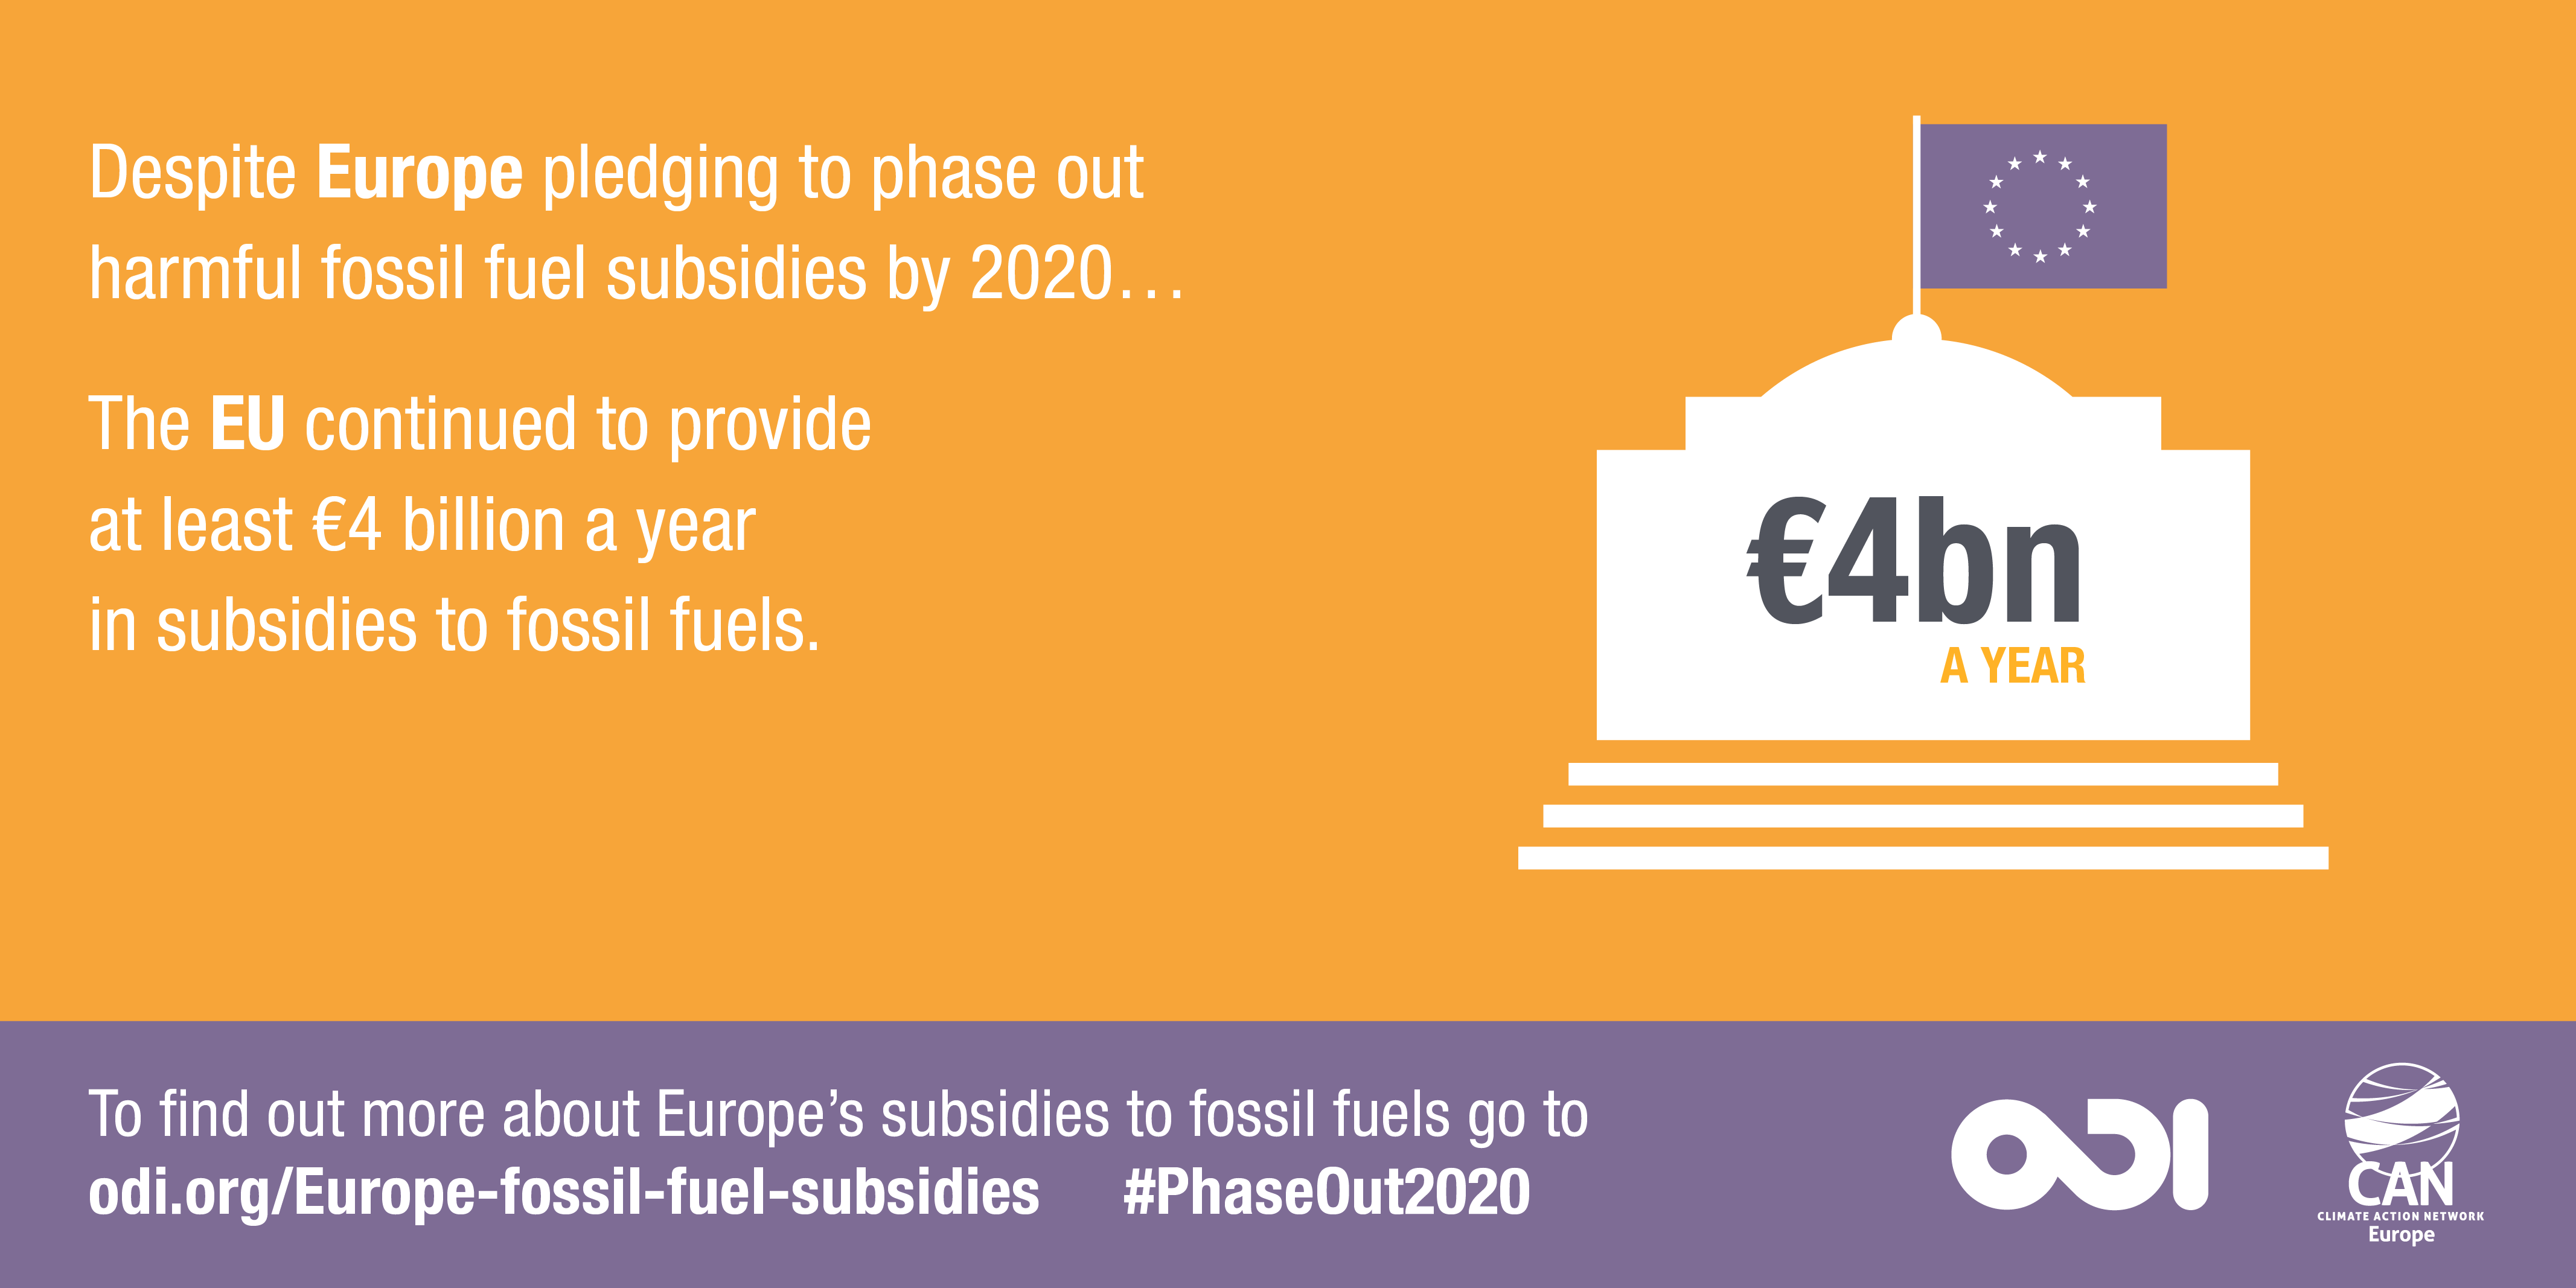 The EU continued to provide at least €4 billion a year in subsidies to fossil fuels. Image: Overseas Development Institute